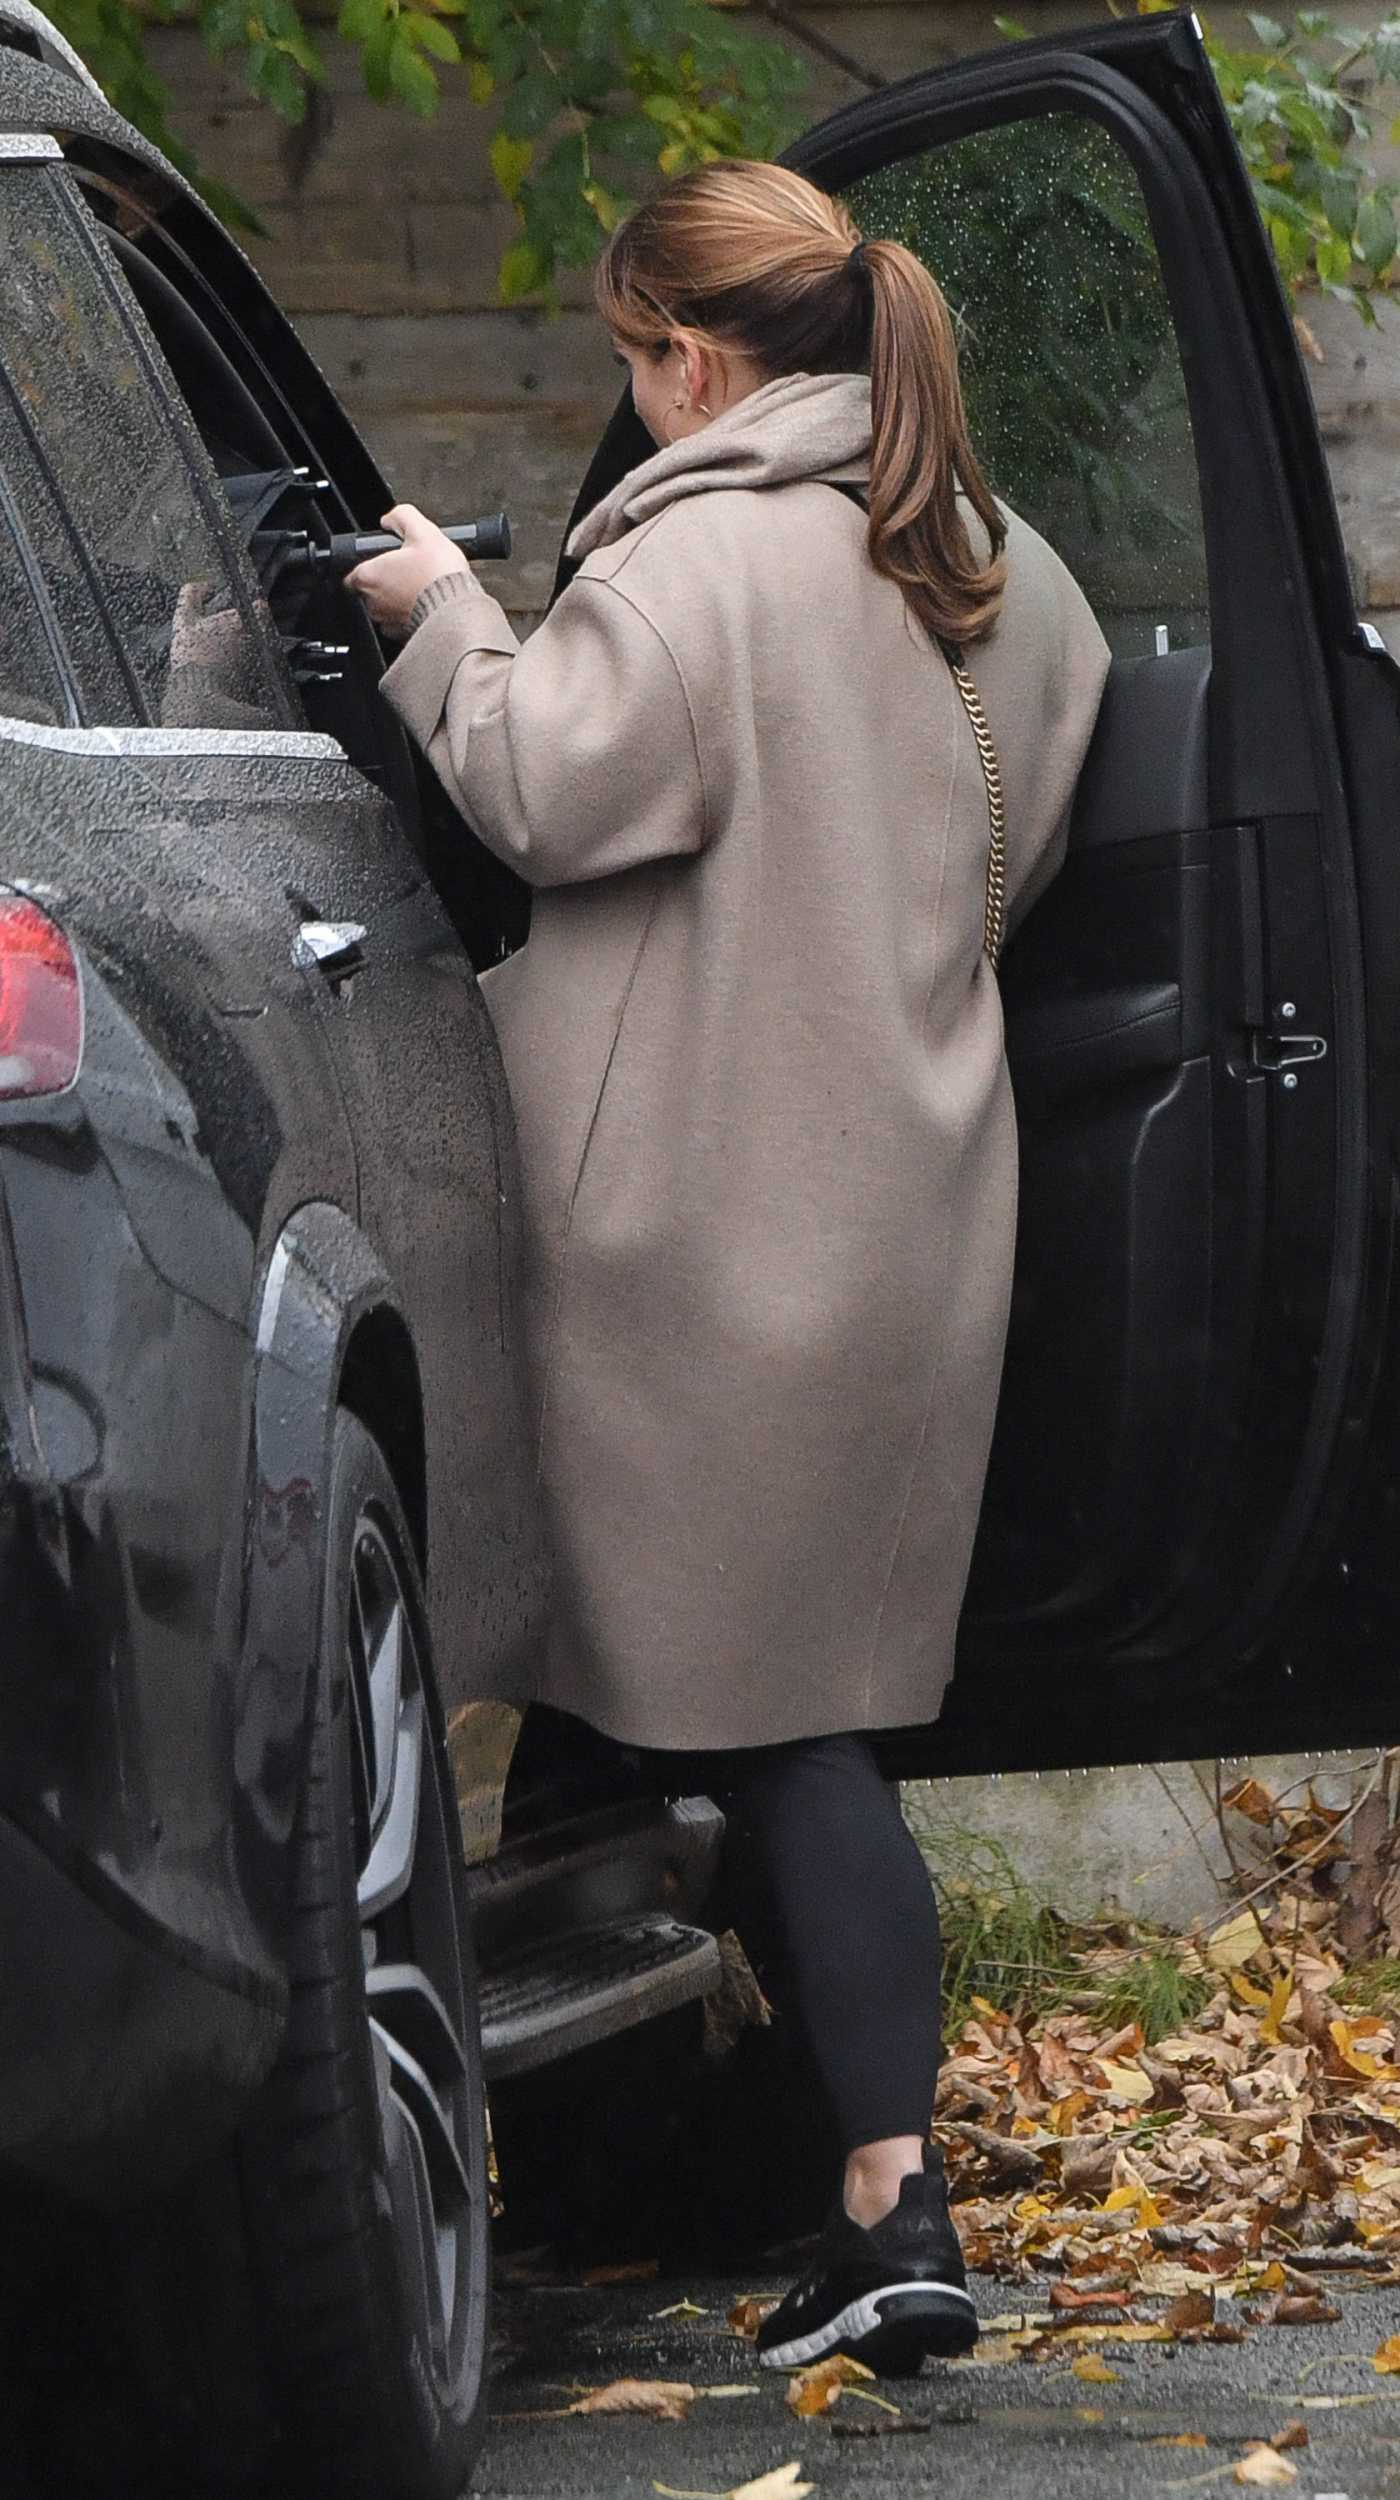 Coleen Rooney in a Beige Coat Loads up Boxes Out in Alderley Edge in Cheshire 10/23/2020